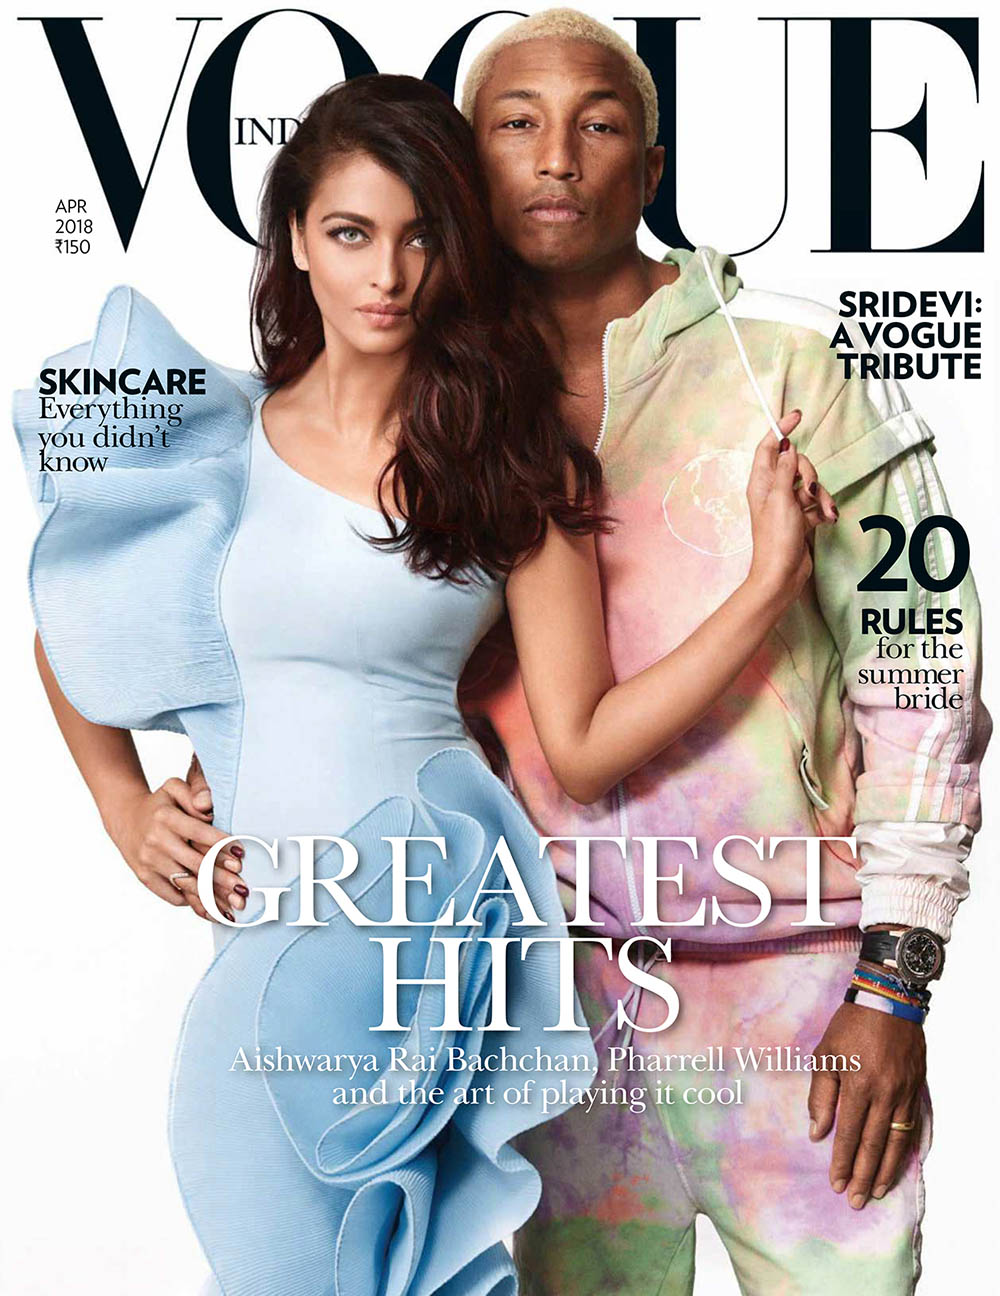 Aishwarya Rai Bachchan and Pharrell Williams cover Vogue India April 2018 by Greg Swales